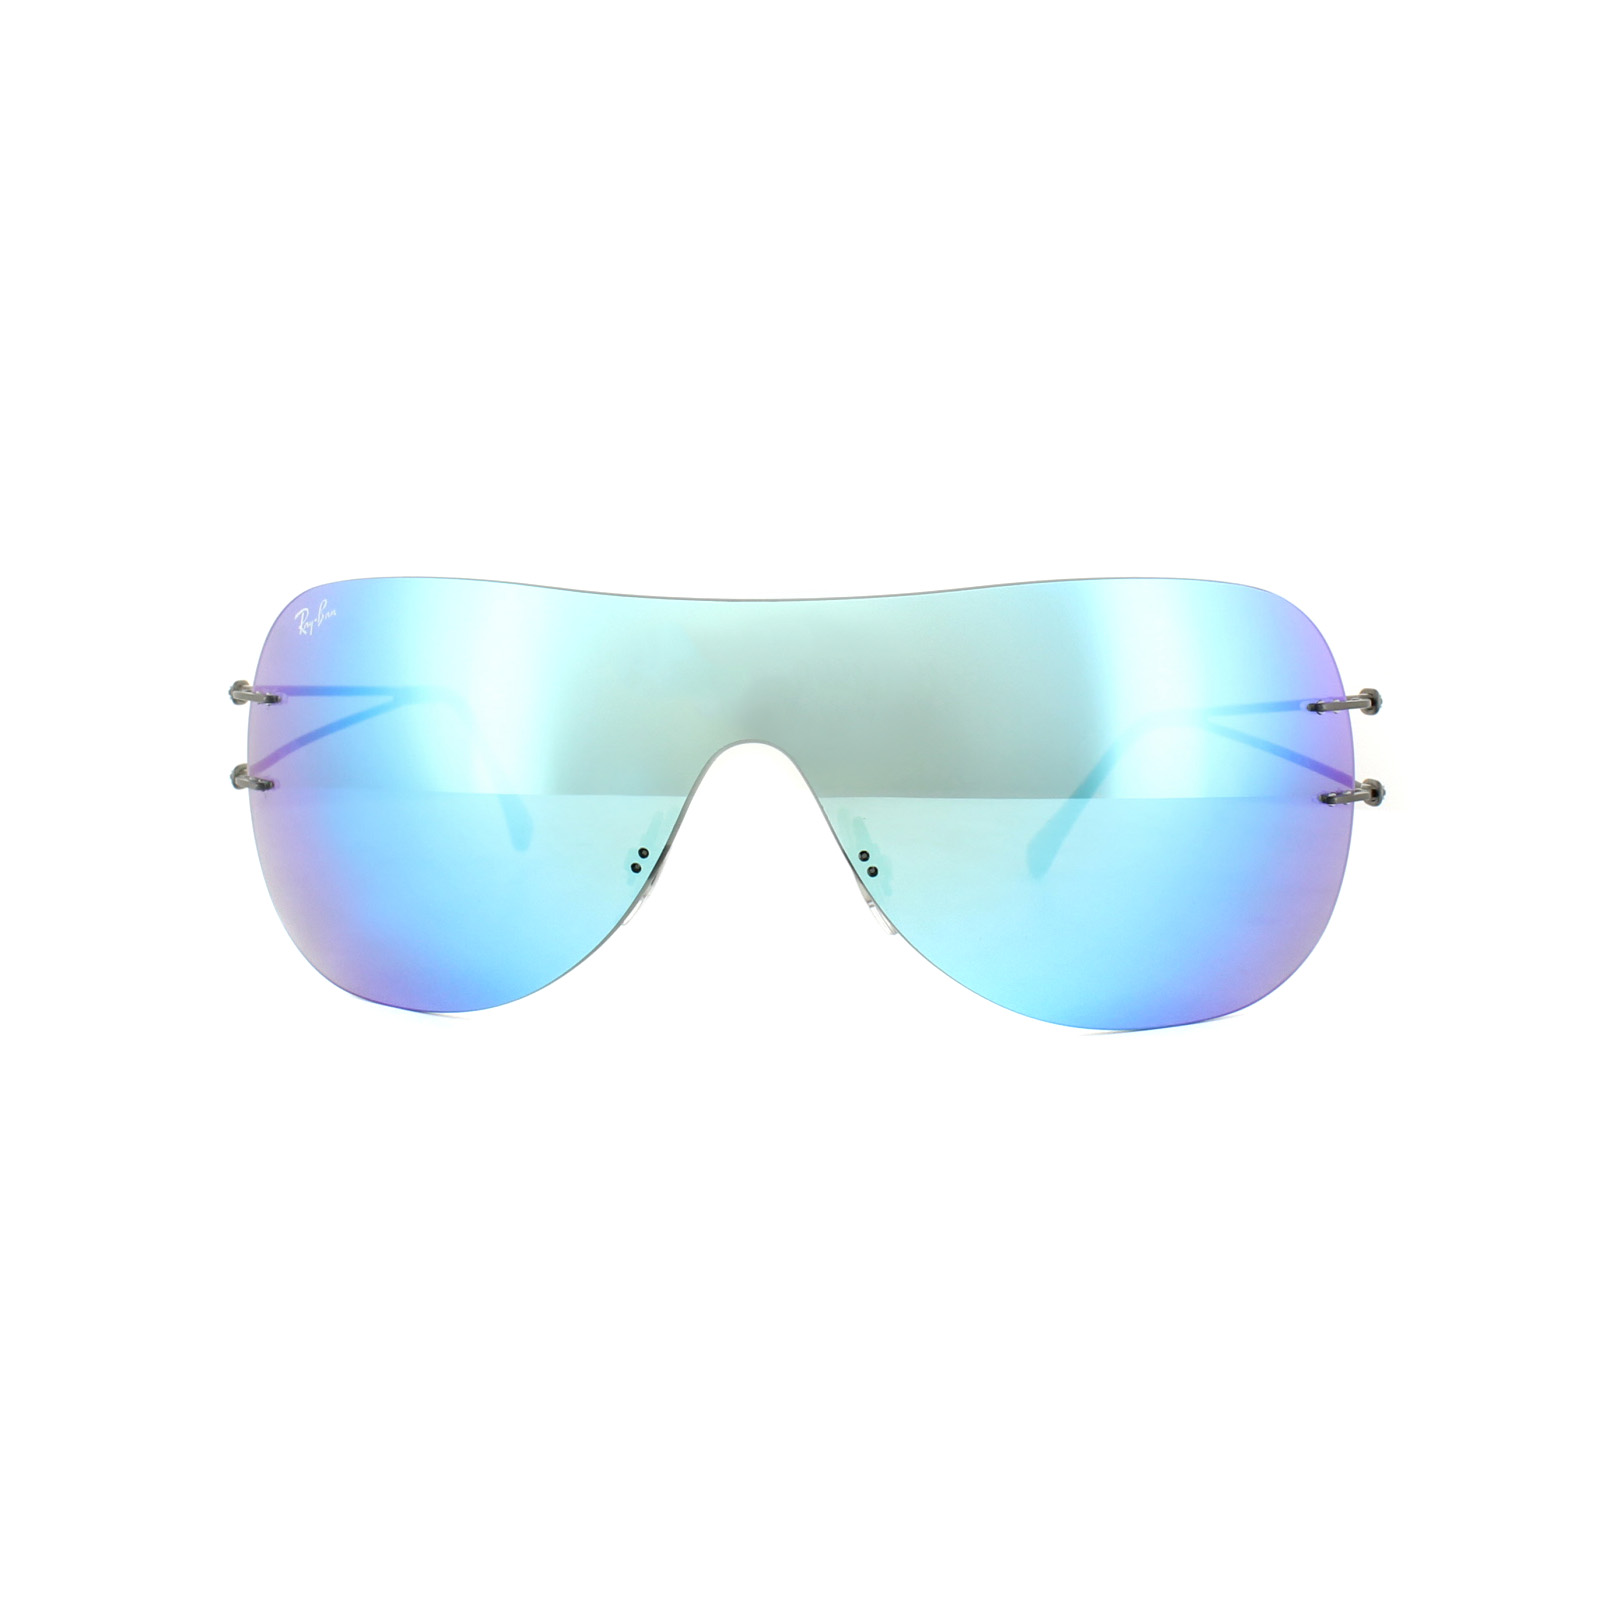 4e666af7b3 All sunglasses lenses give 100% UV protection. Ray-Ban